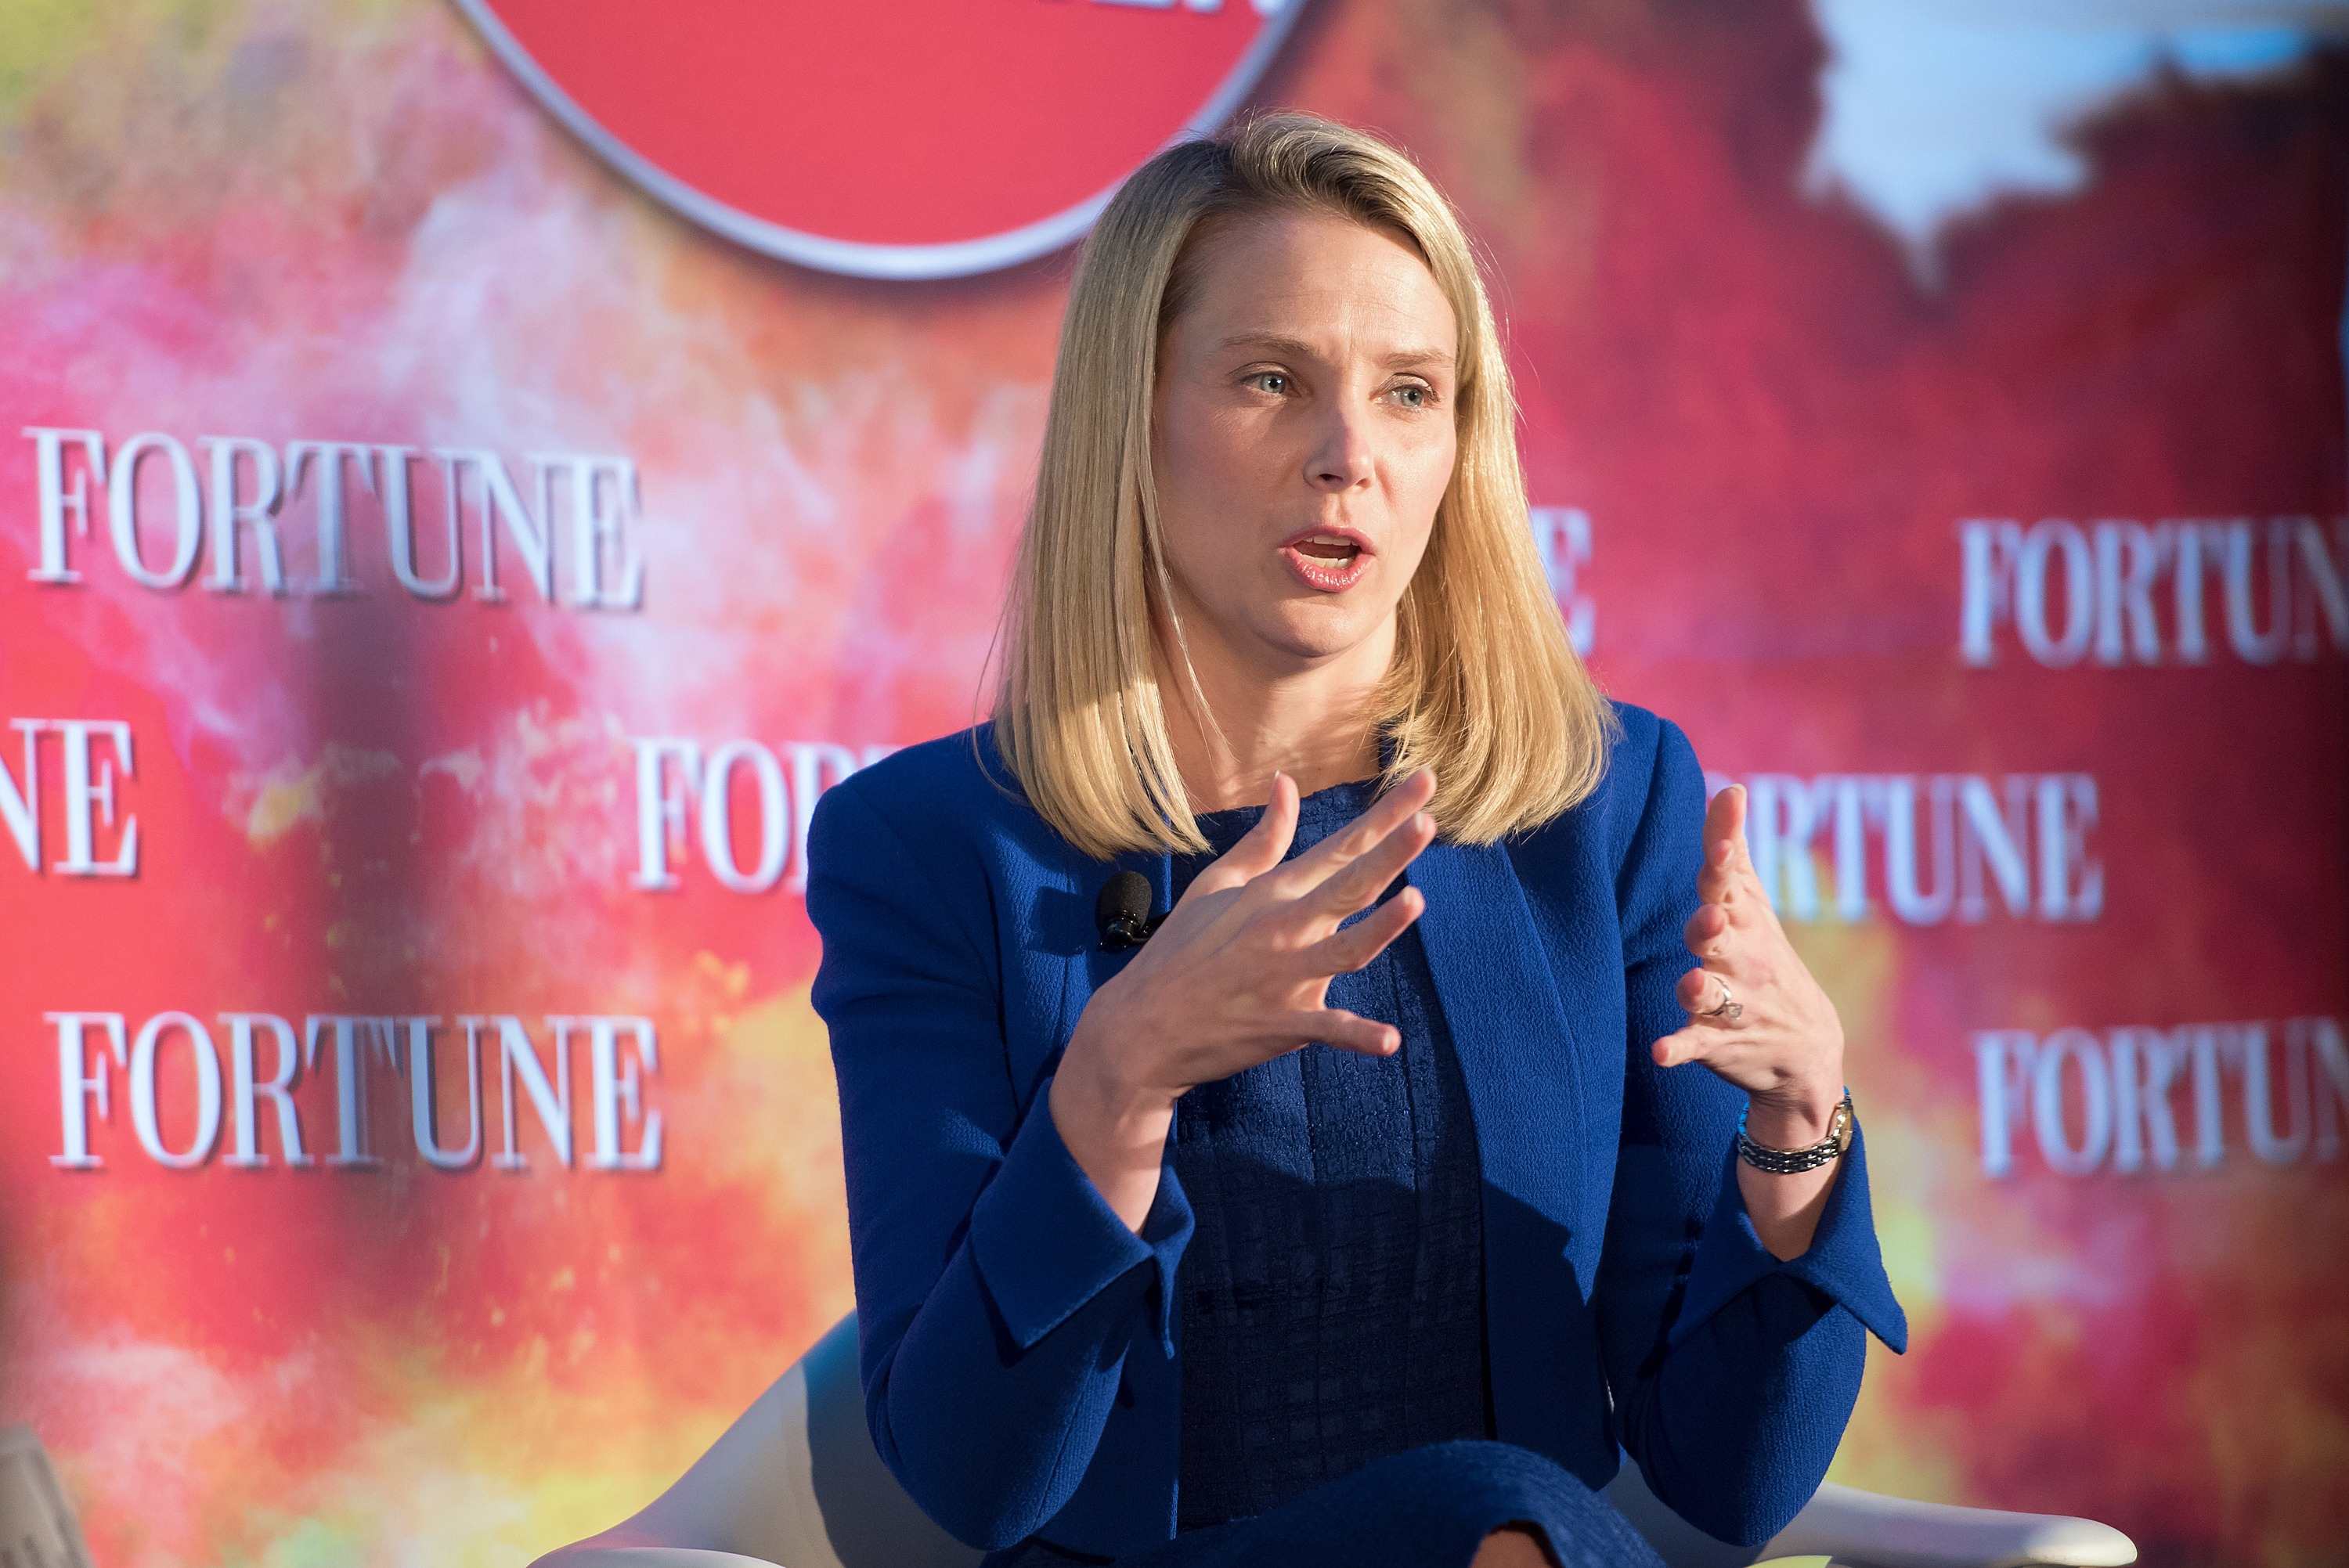 President and CEO of Yahoo Marissa Mayer attends Fortune Magazines 2015 Most Powerful Women Evening With NYC at Time Warner Center in New York City, on May 18, 2015.